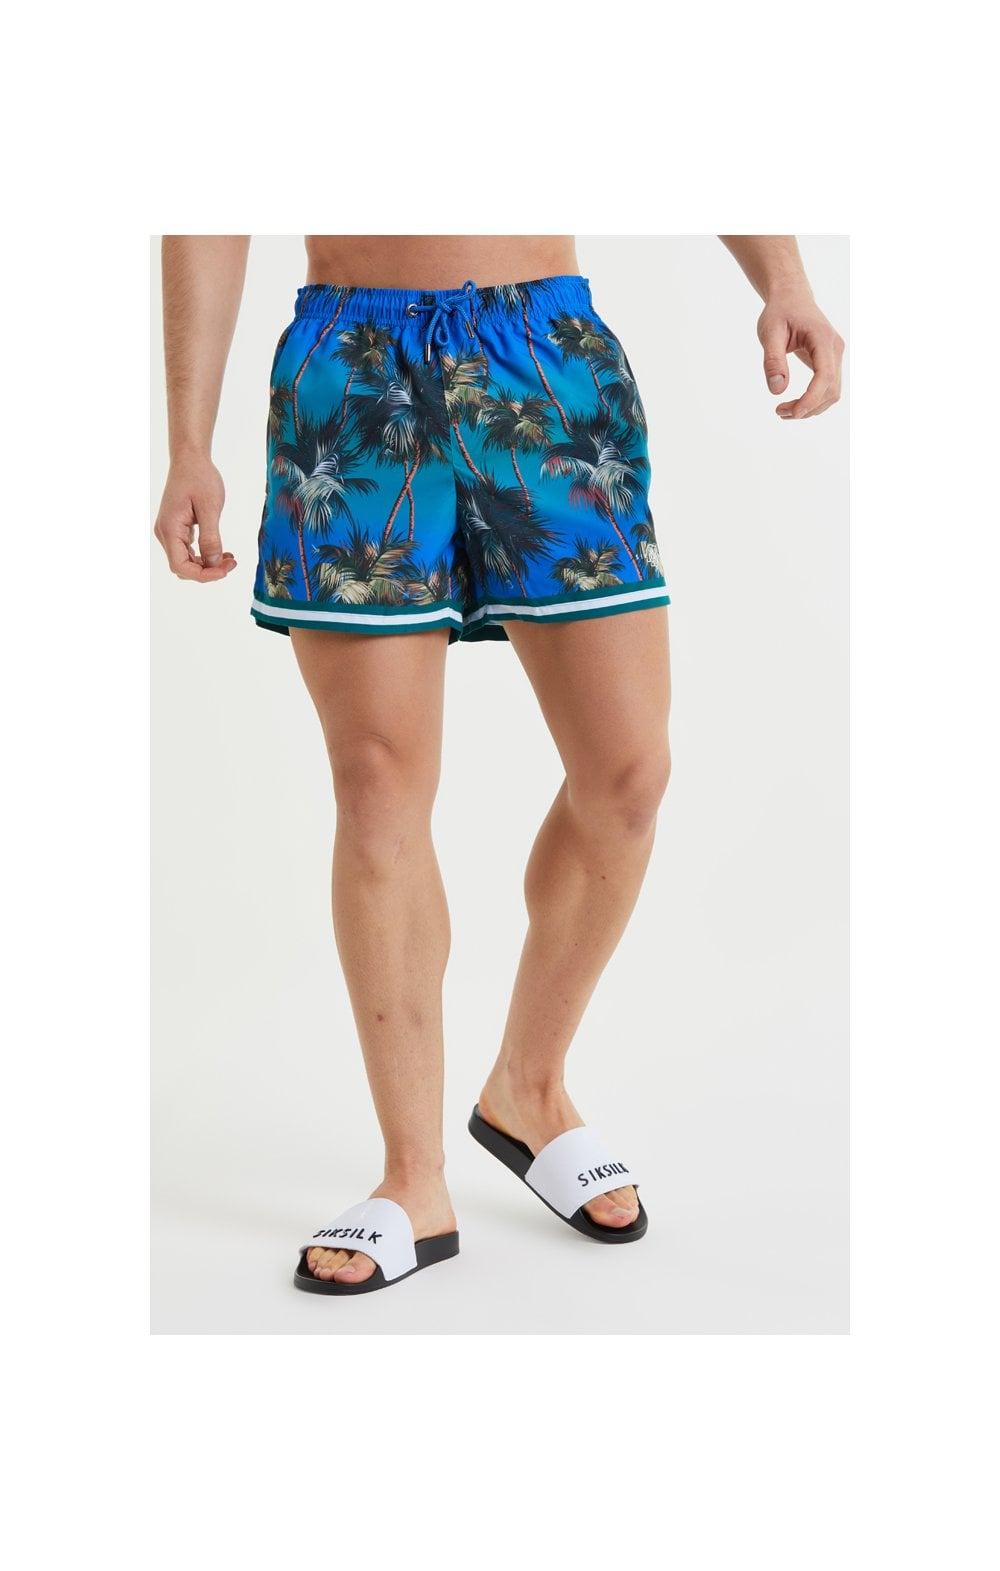 Load image into Gallery viewer, SikSilk Palm Swim Shorts - Blue & Green (1)